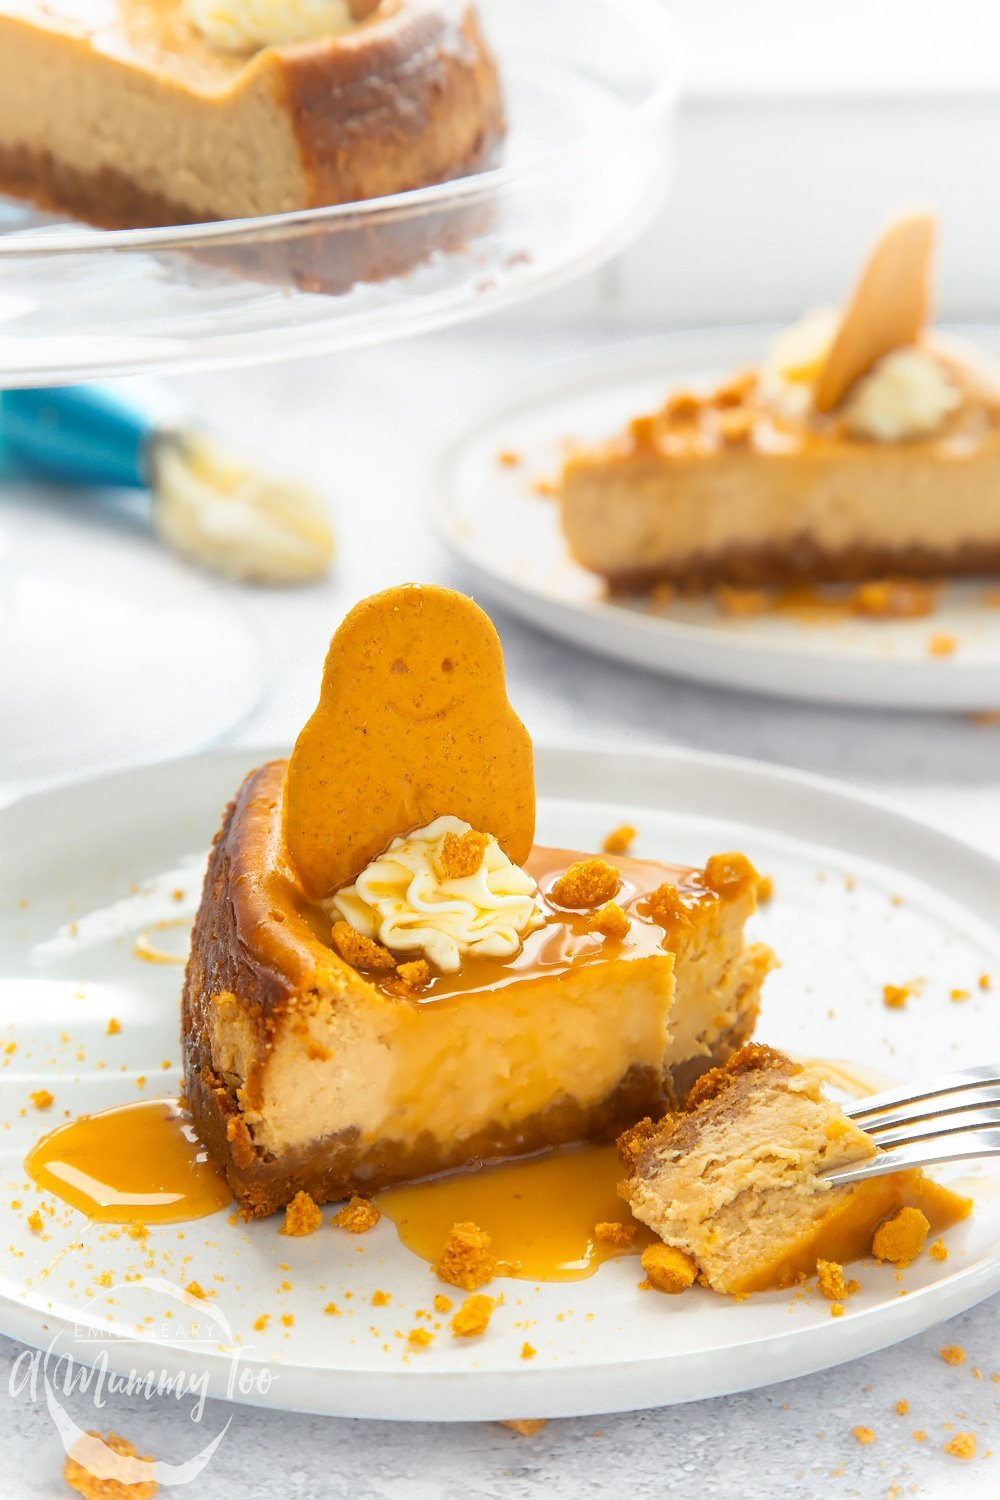 Front angle shot of a Gingerbread cheesecake drizzled with caramel sauce served on a white plate with a mummy too logo in the lower-left corner